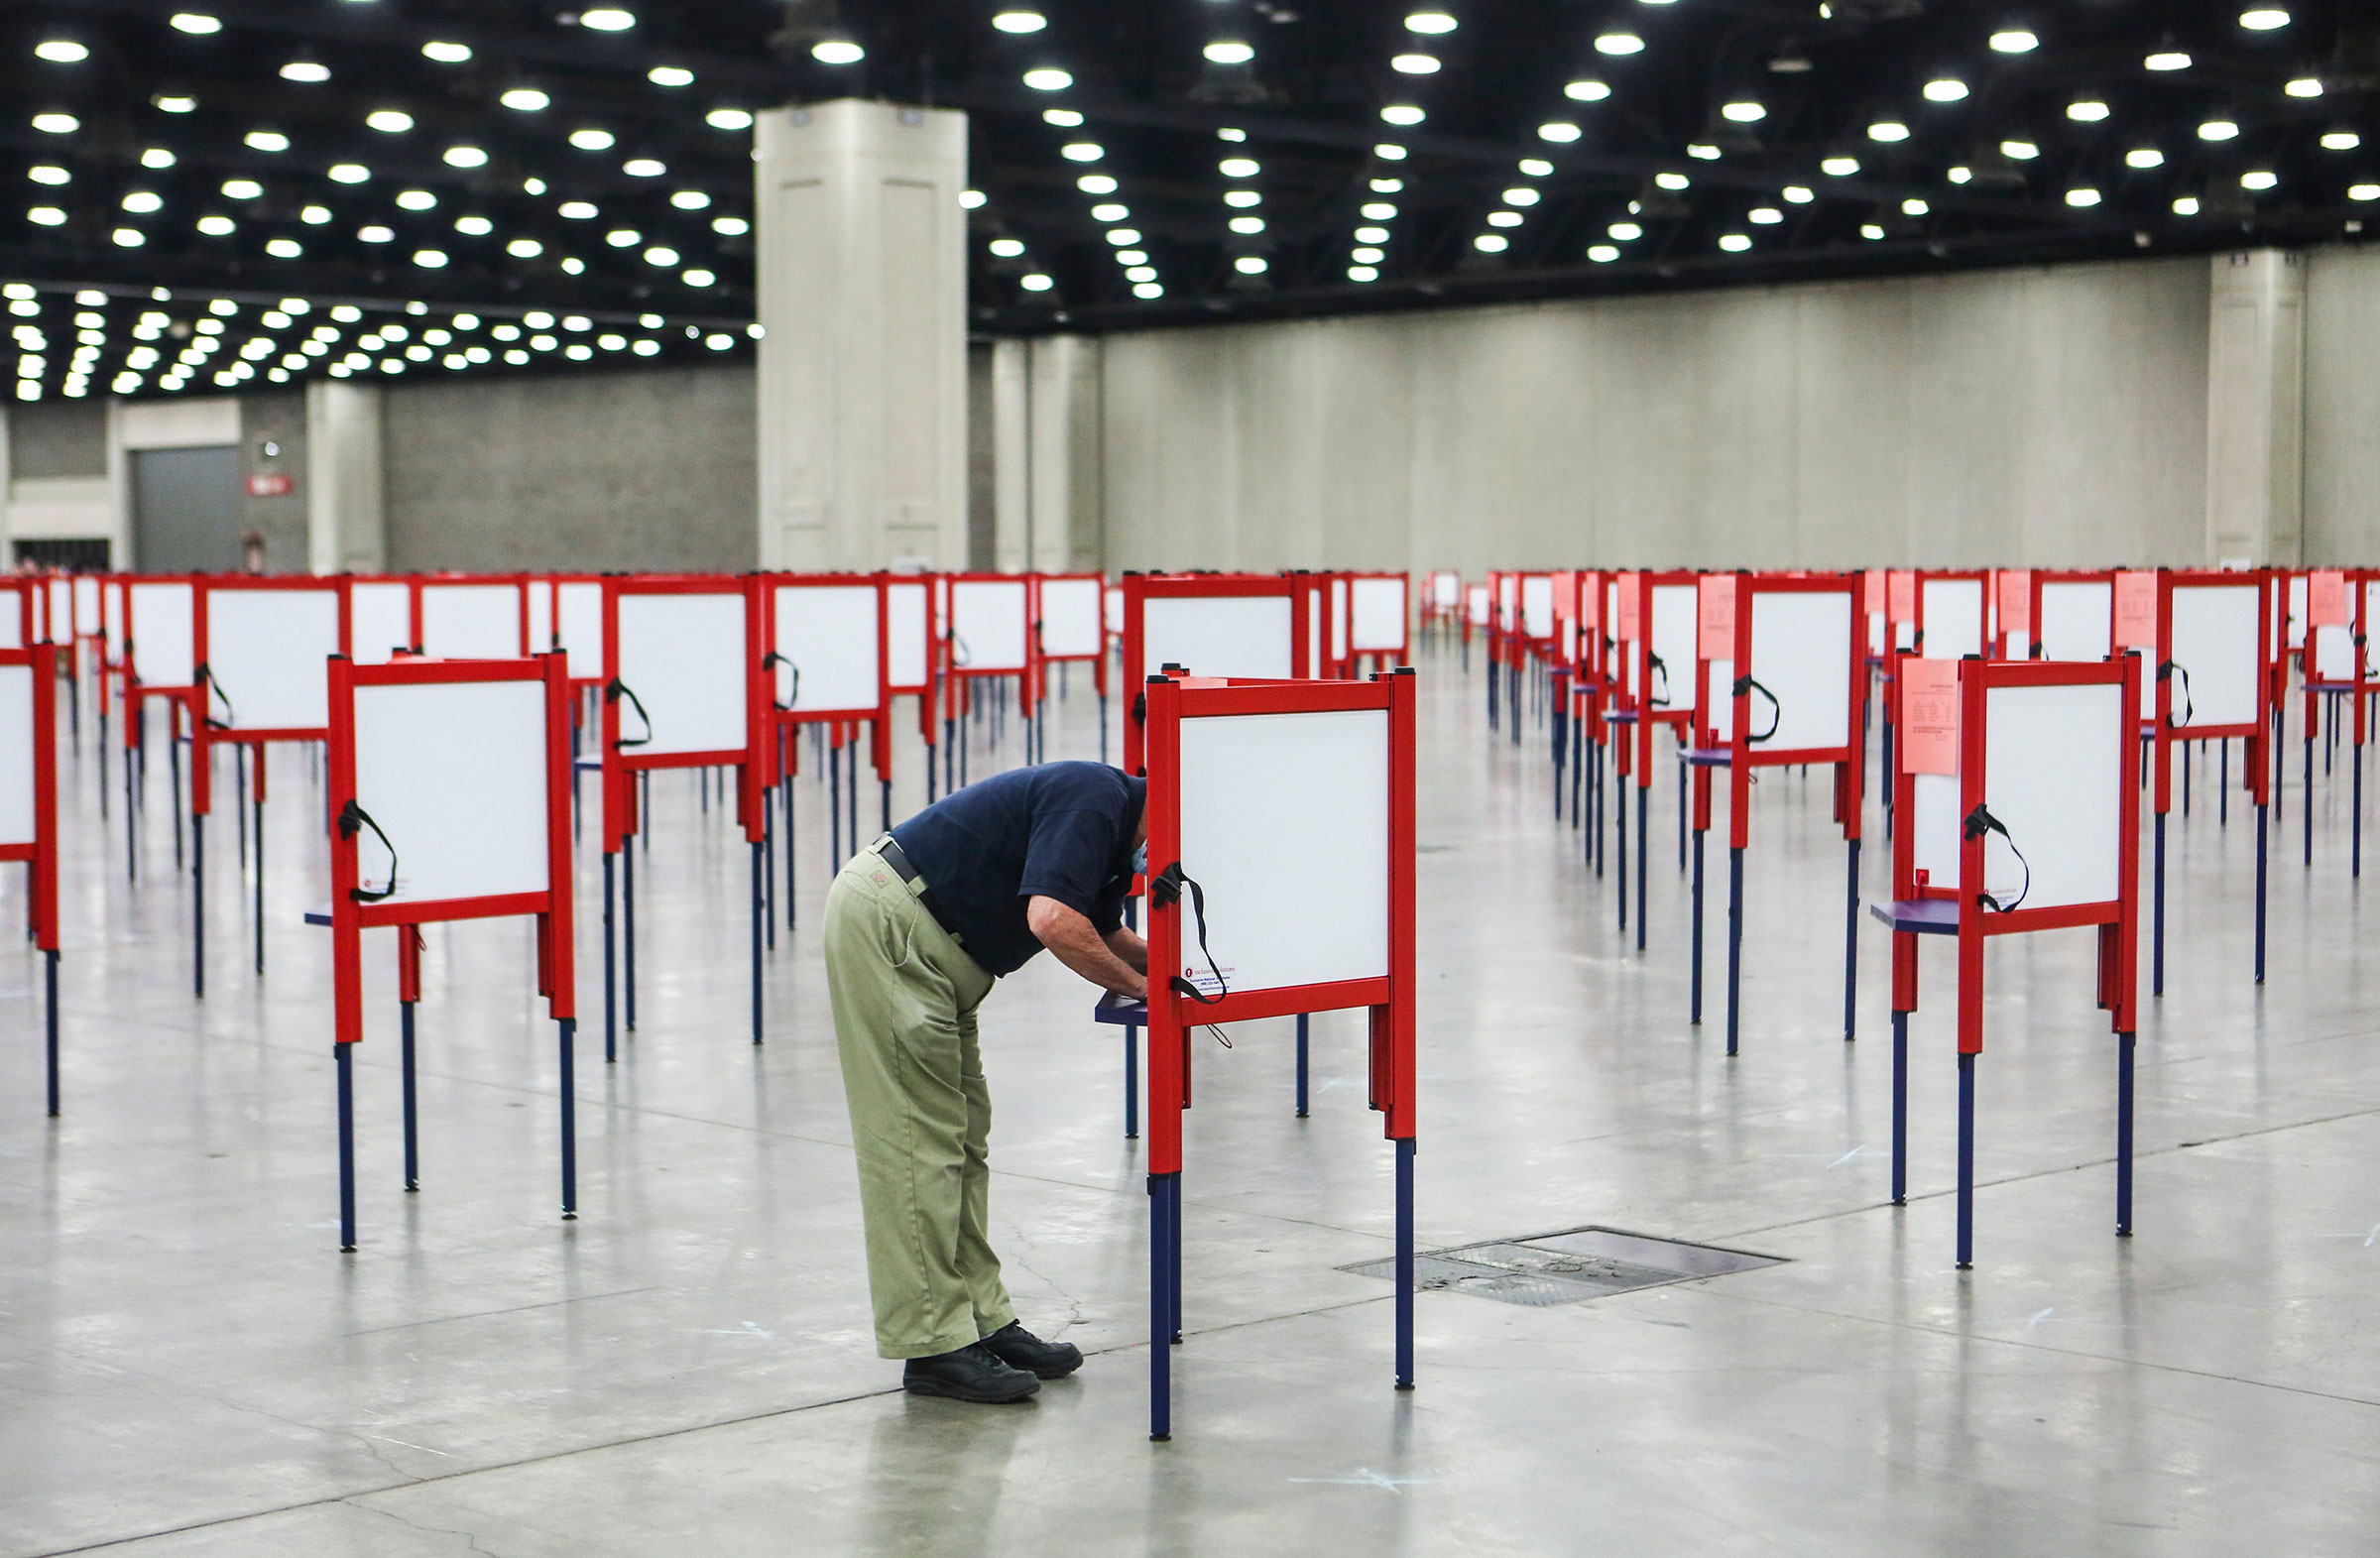 Voters had hundreds of voting booths to choose from during early voting for the Kentucky Primary in Louisville on June 15, 2020.